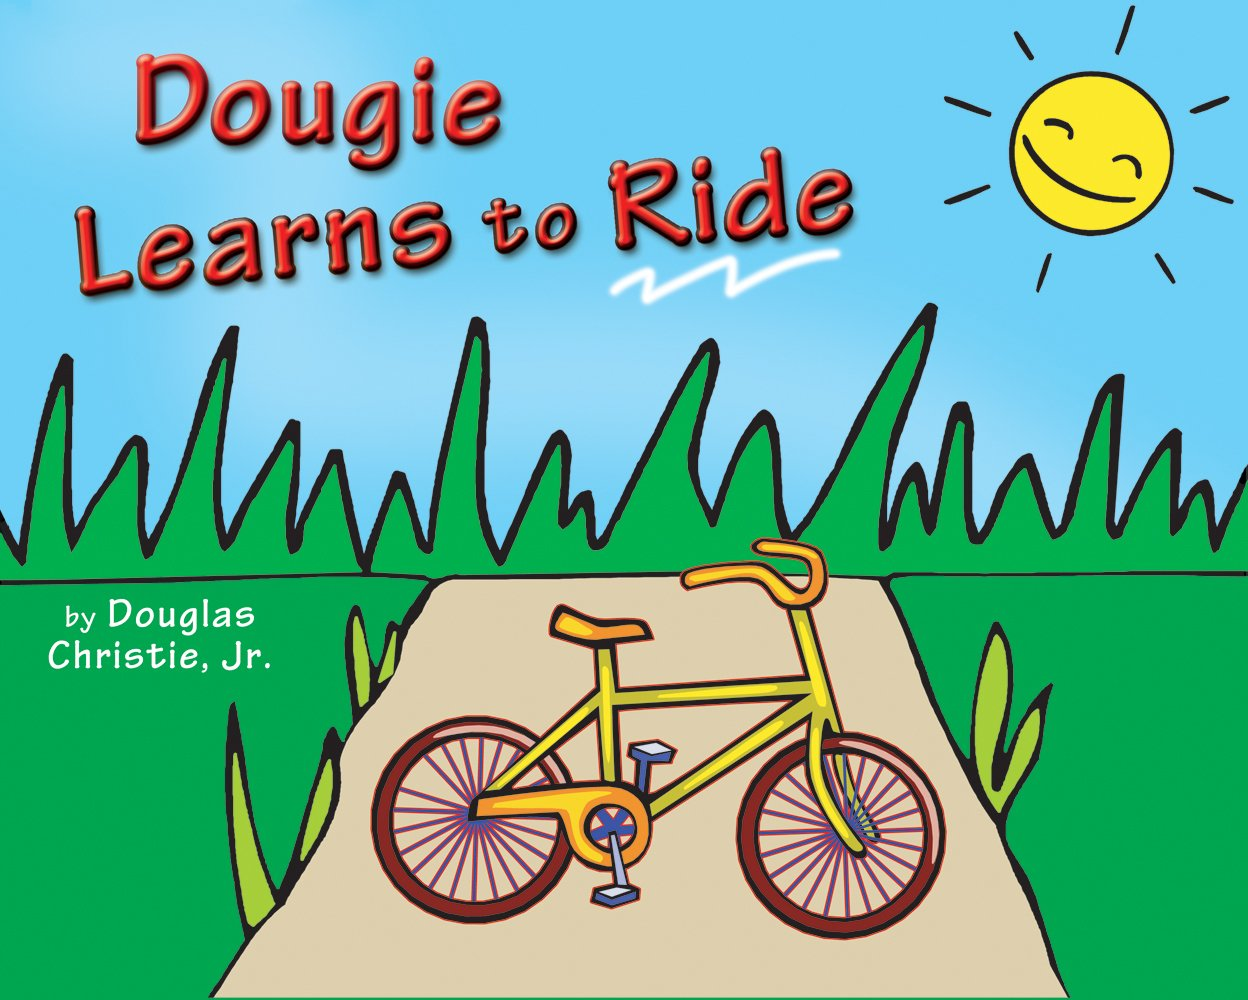 Dougie Learns To Ride